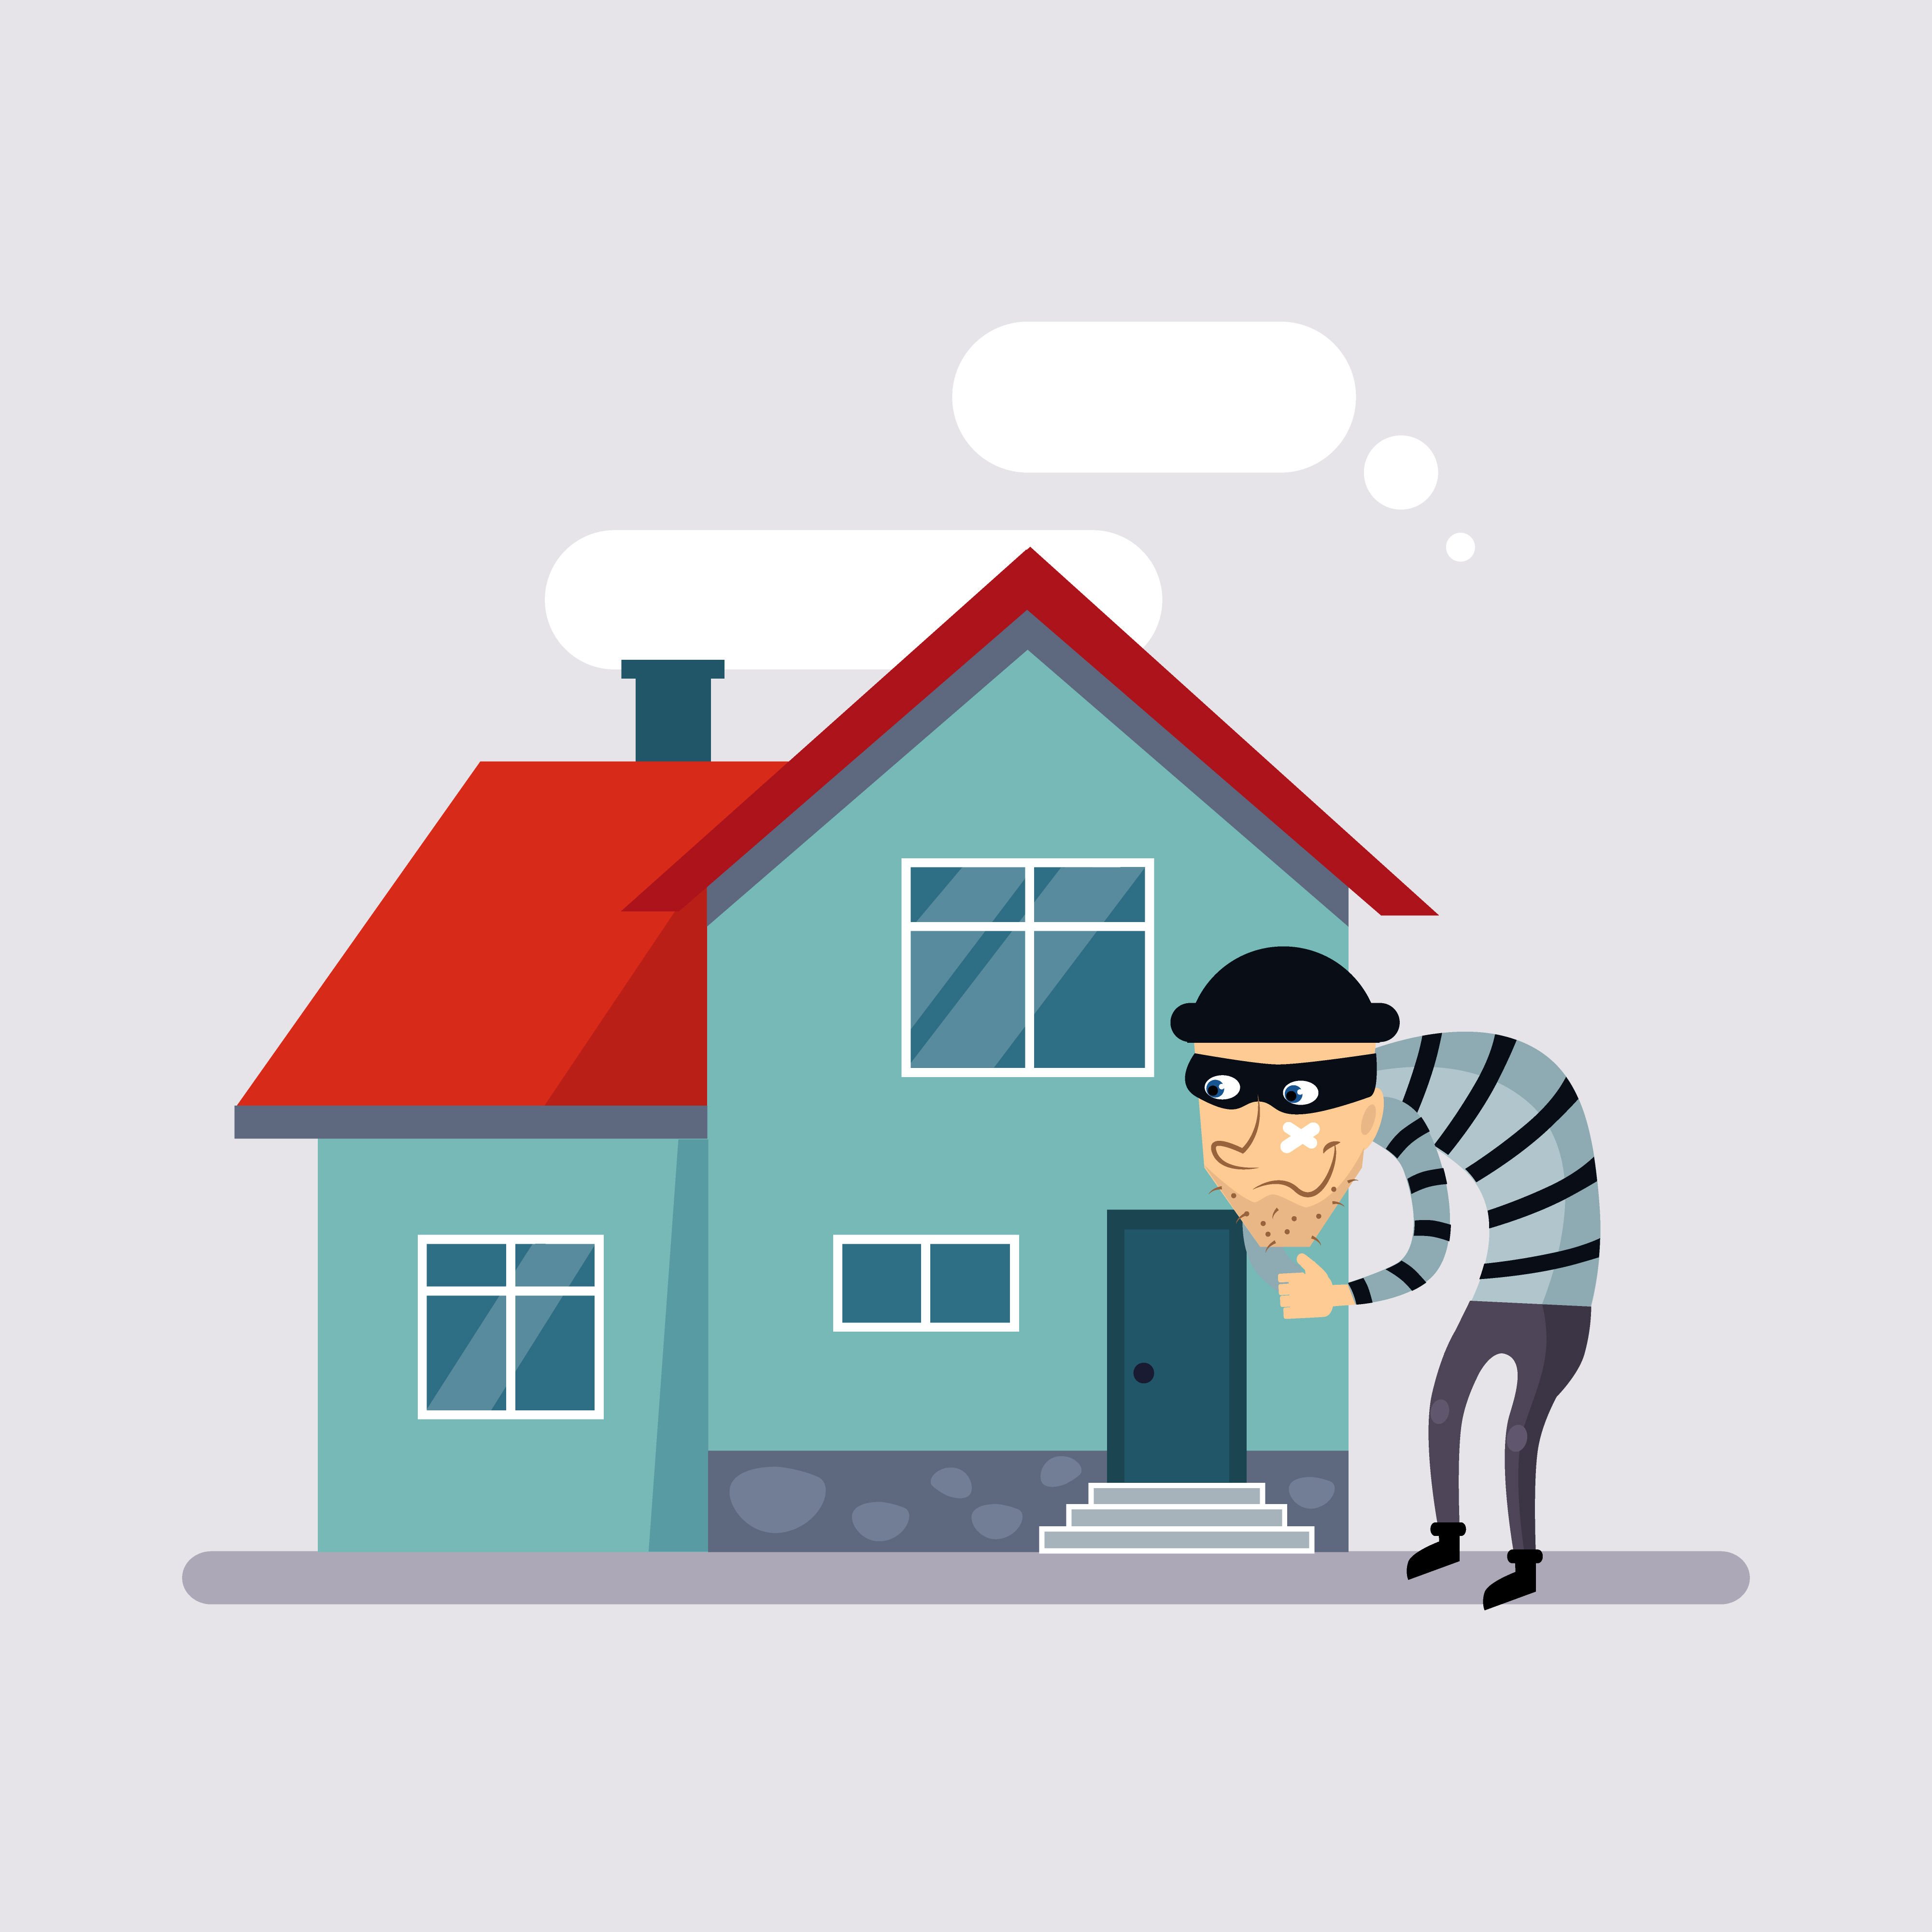 Burglar singling house out